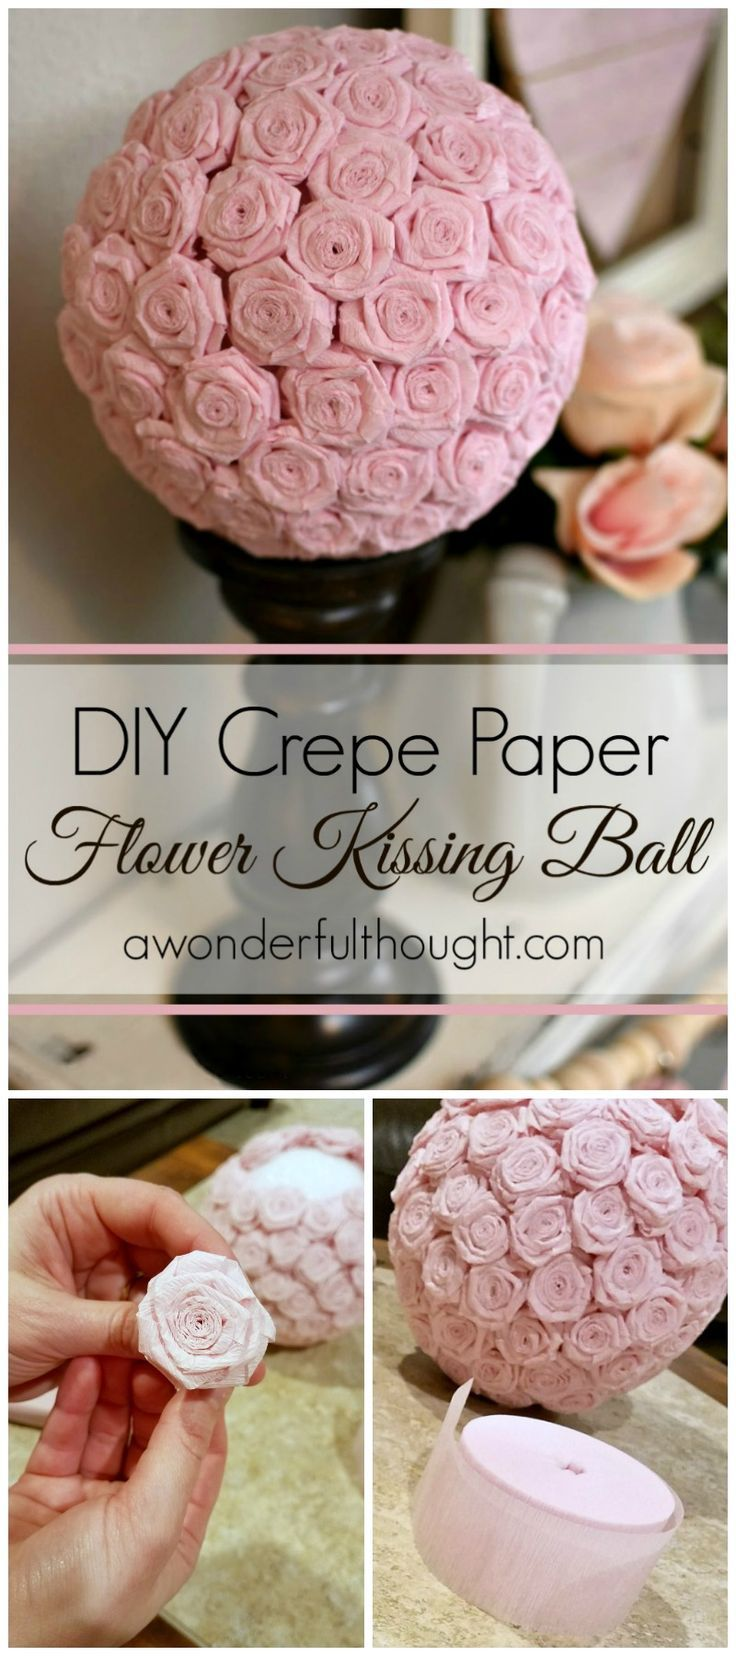 377 best flower tutorials 5 images on pinterest fabric flowers diy crepe paper flower kissing ball dhlflorist Image collections